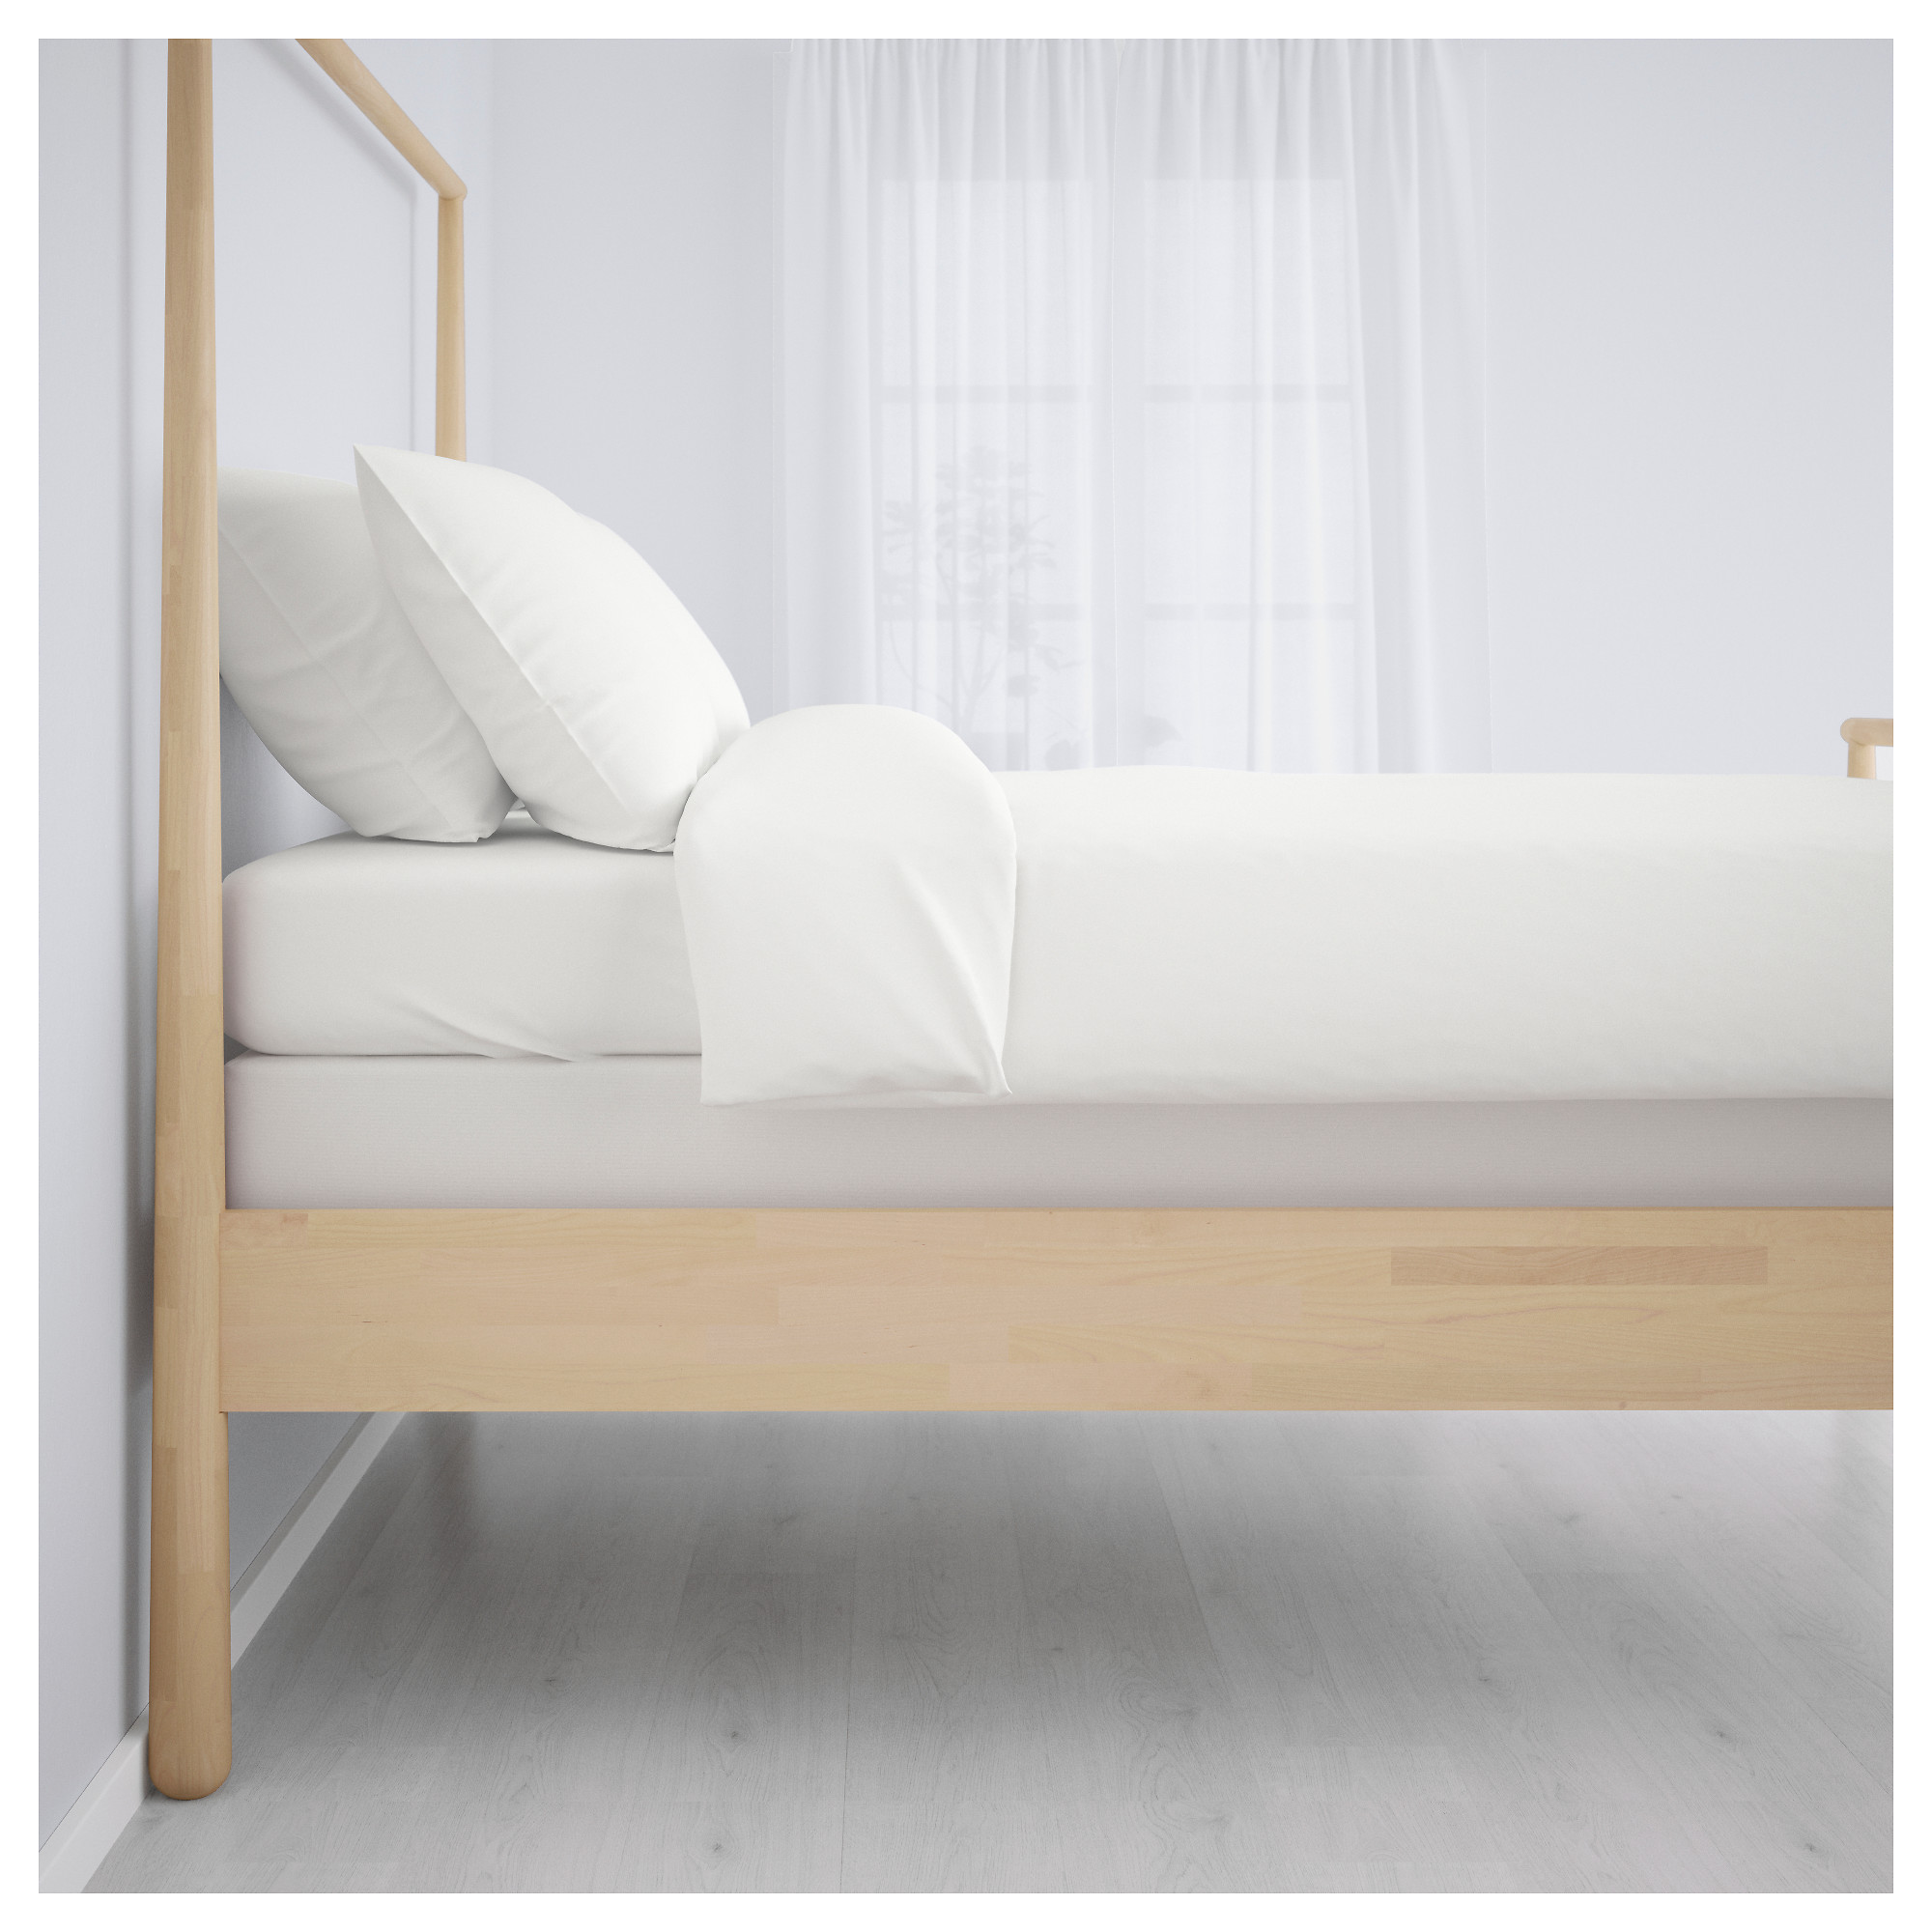 GJ–RA Bed frame Queen Lönset slatted bed base IKEA